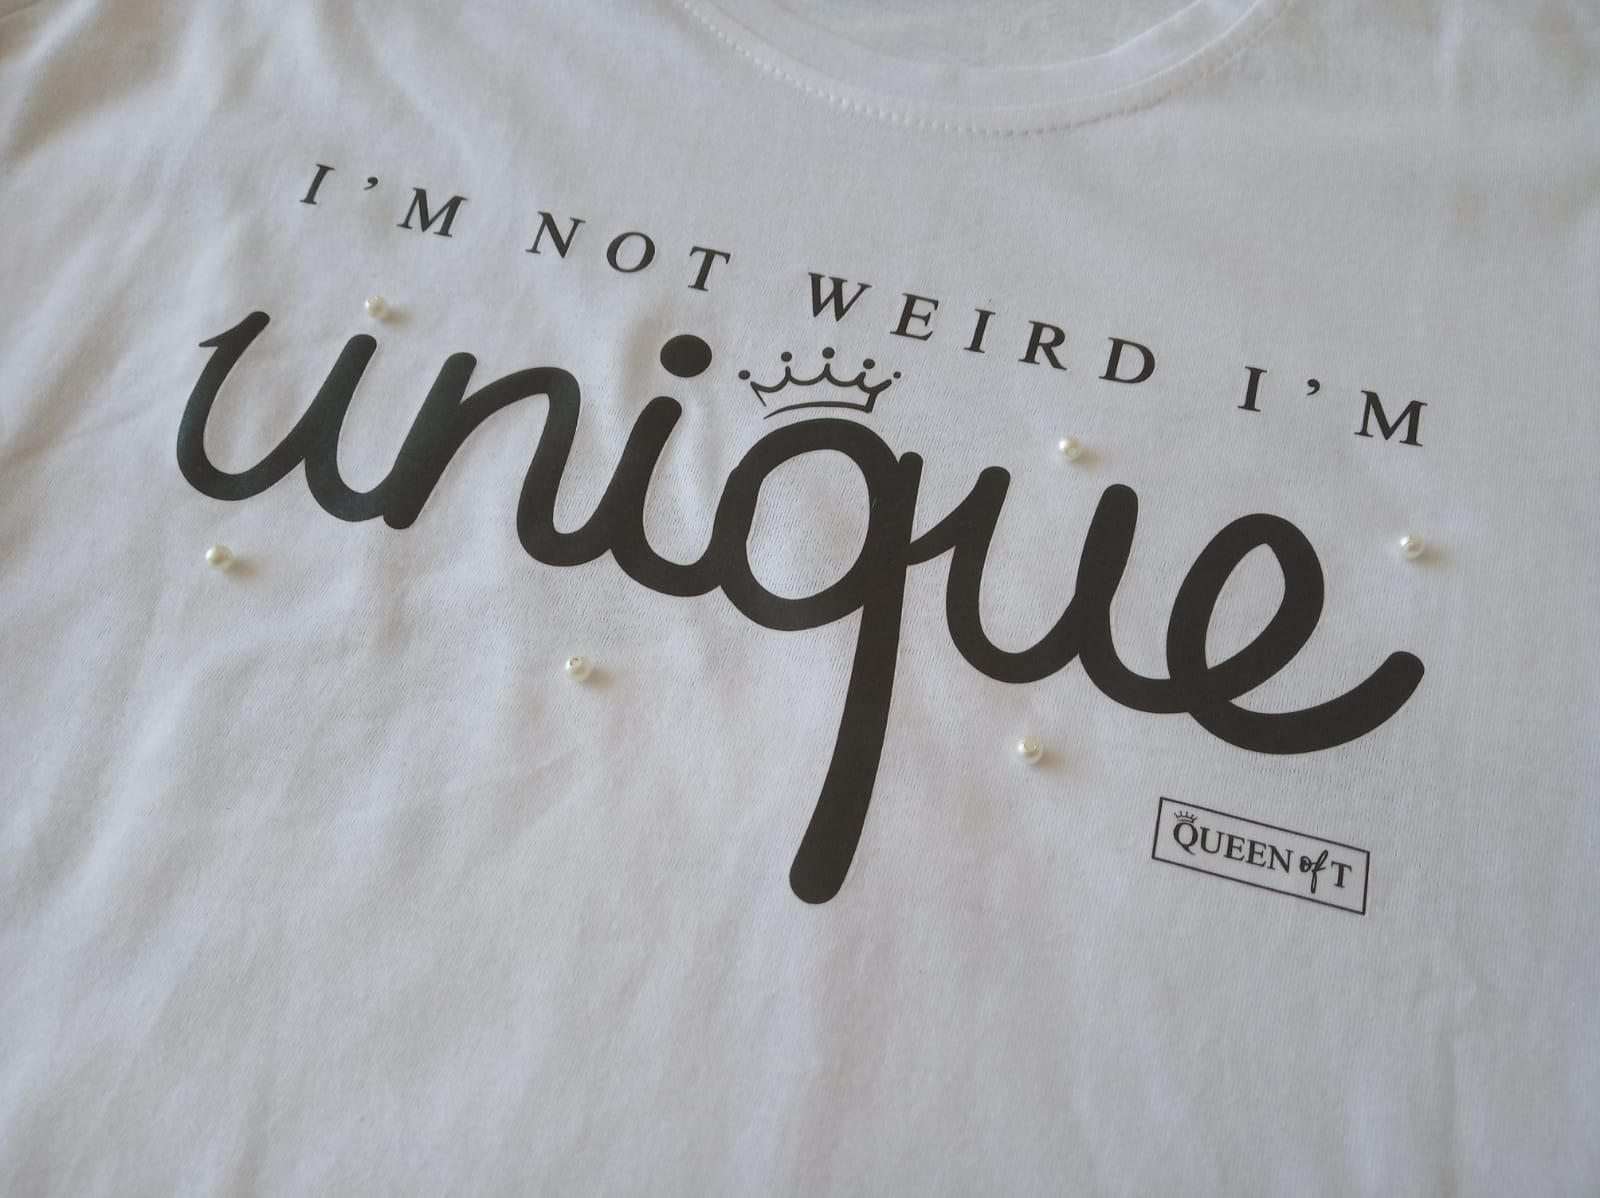 I'M NOT WEIRD I'M UNIQUE